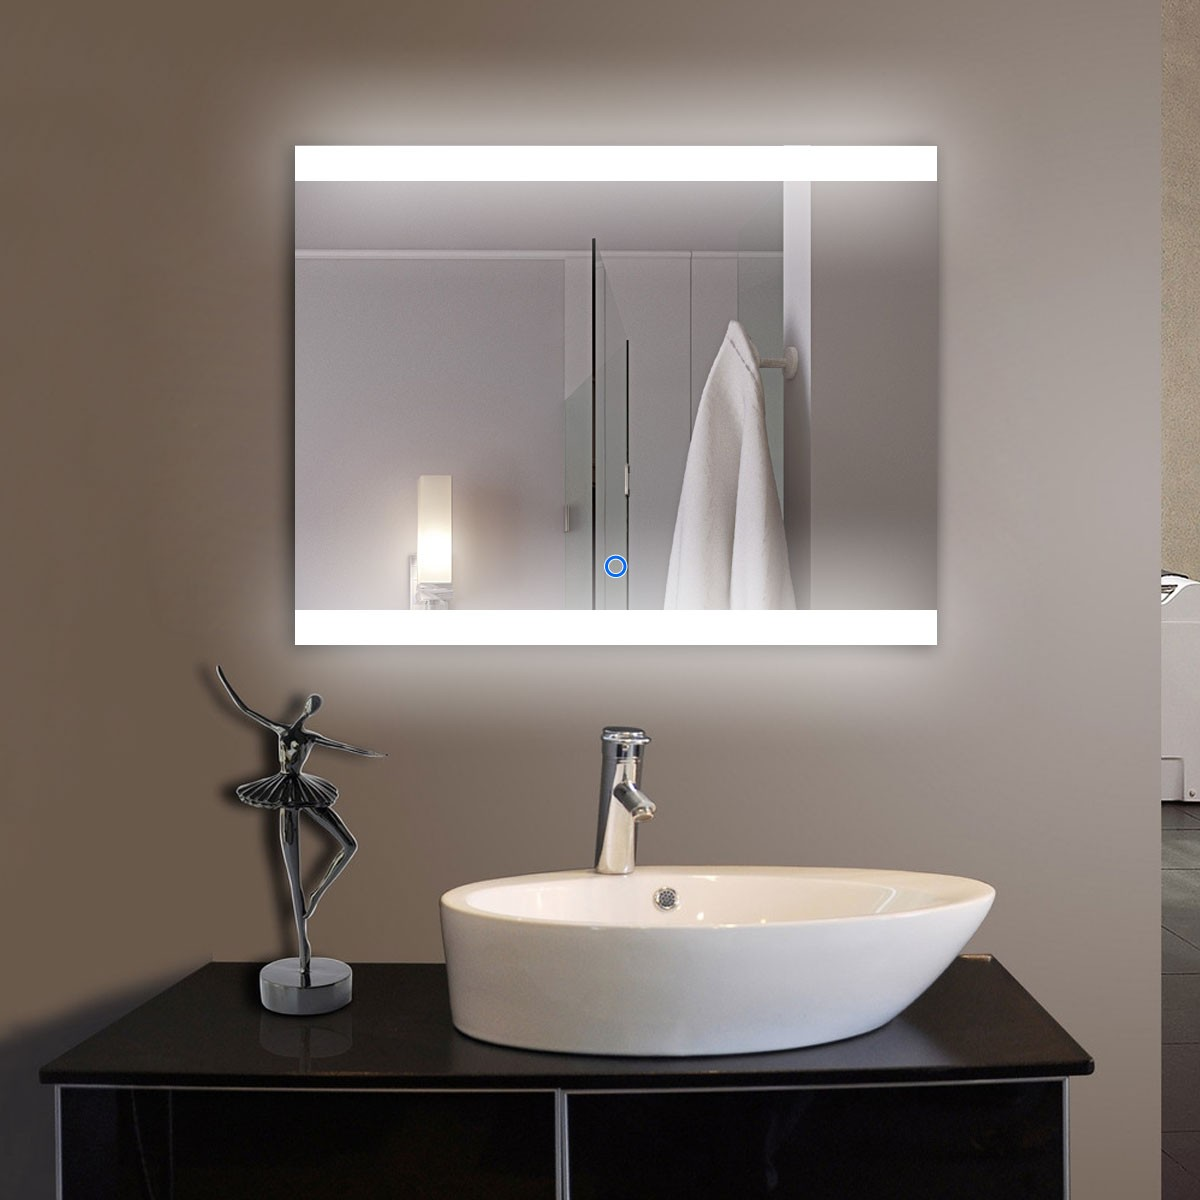 36 x 28 In Horizontal LED Lighted Bathroom Mirror, Touch Button (DK-OD-CL056)